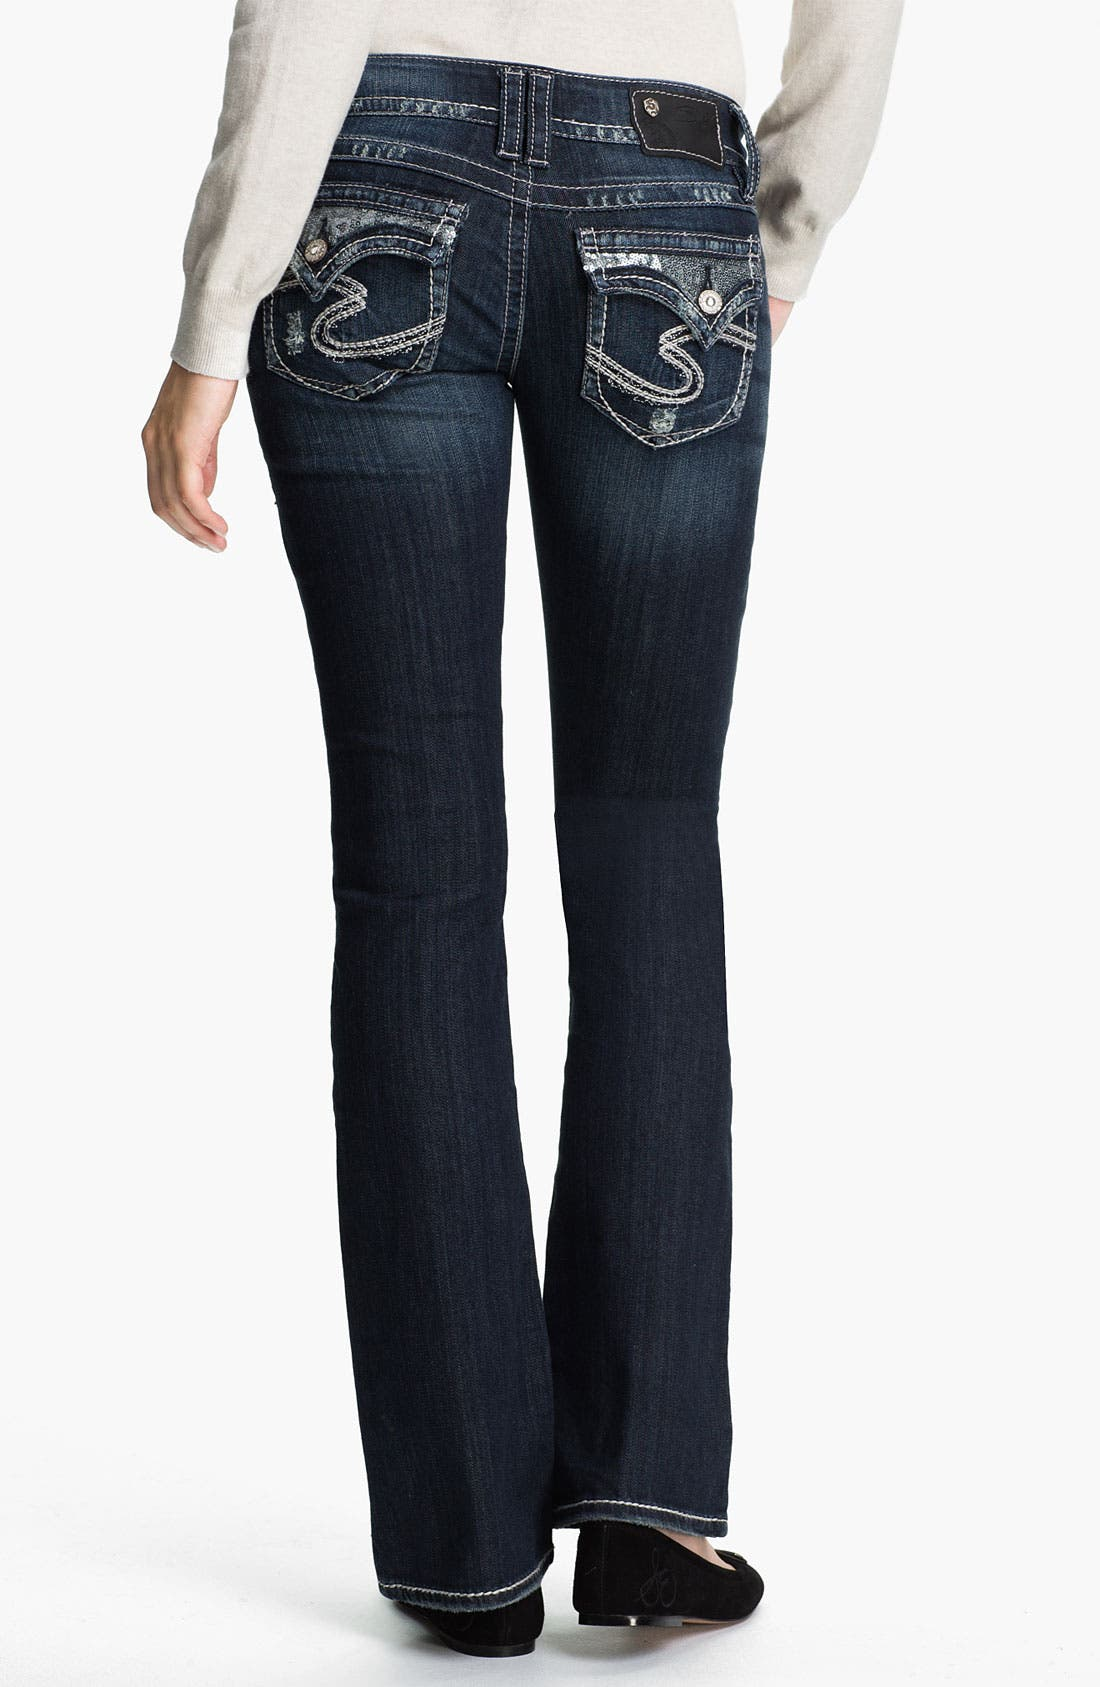 Alternate Image 1 Selected - Silver Jeans Co. 'Dawson' Boot-cut Jeans (Juniors)